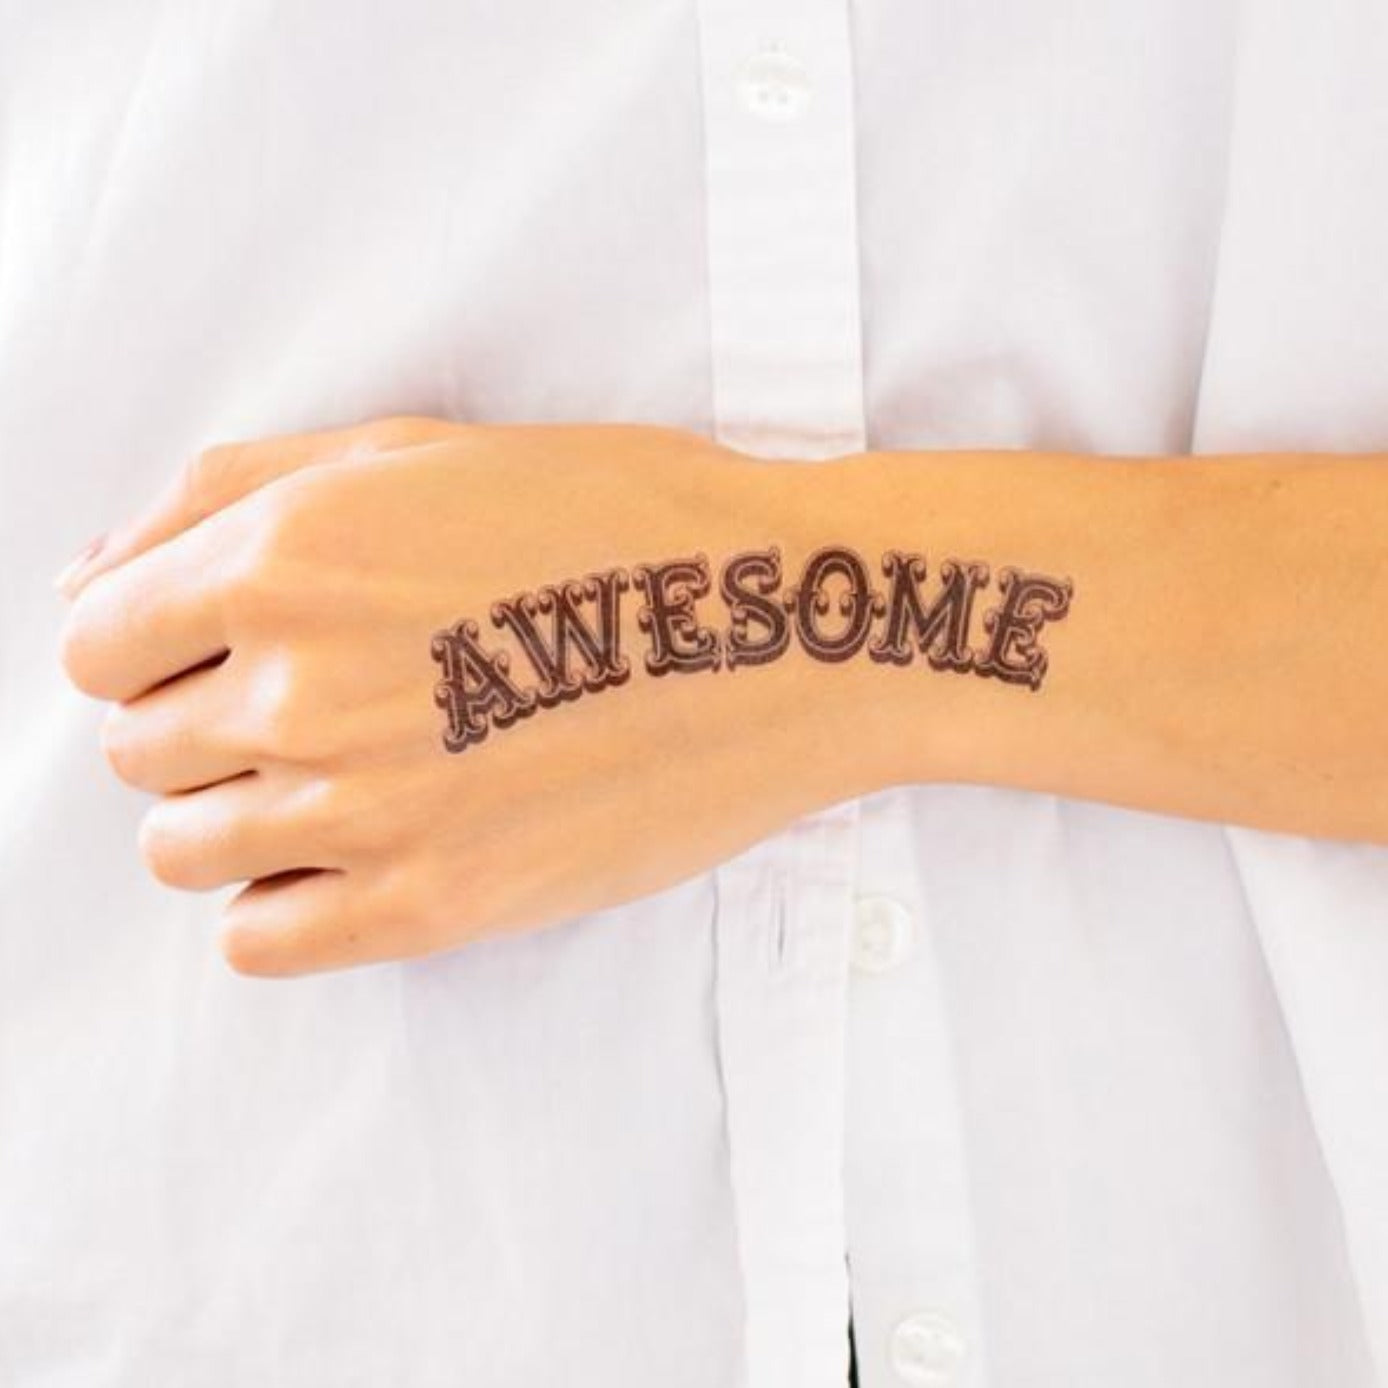 Tattly Awesome Tattoo on DLK